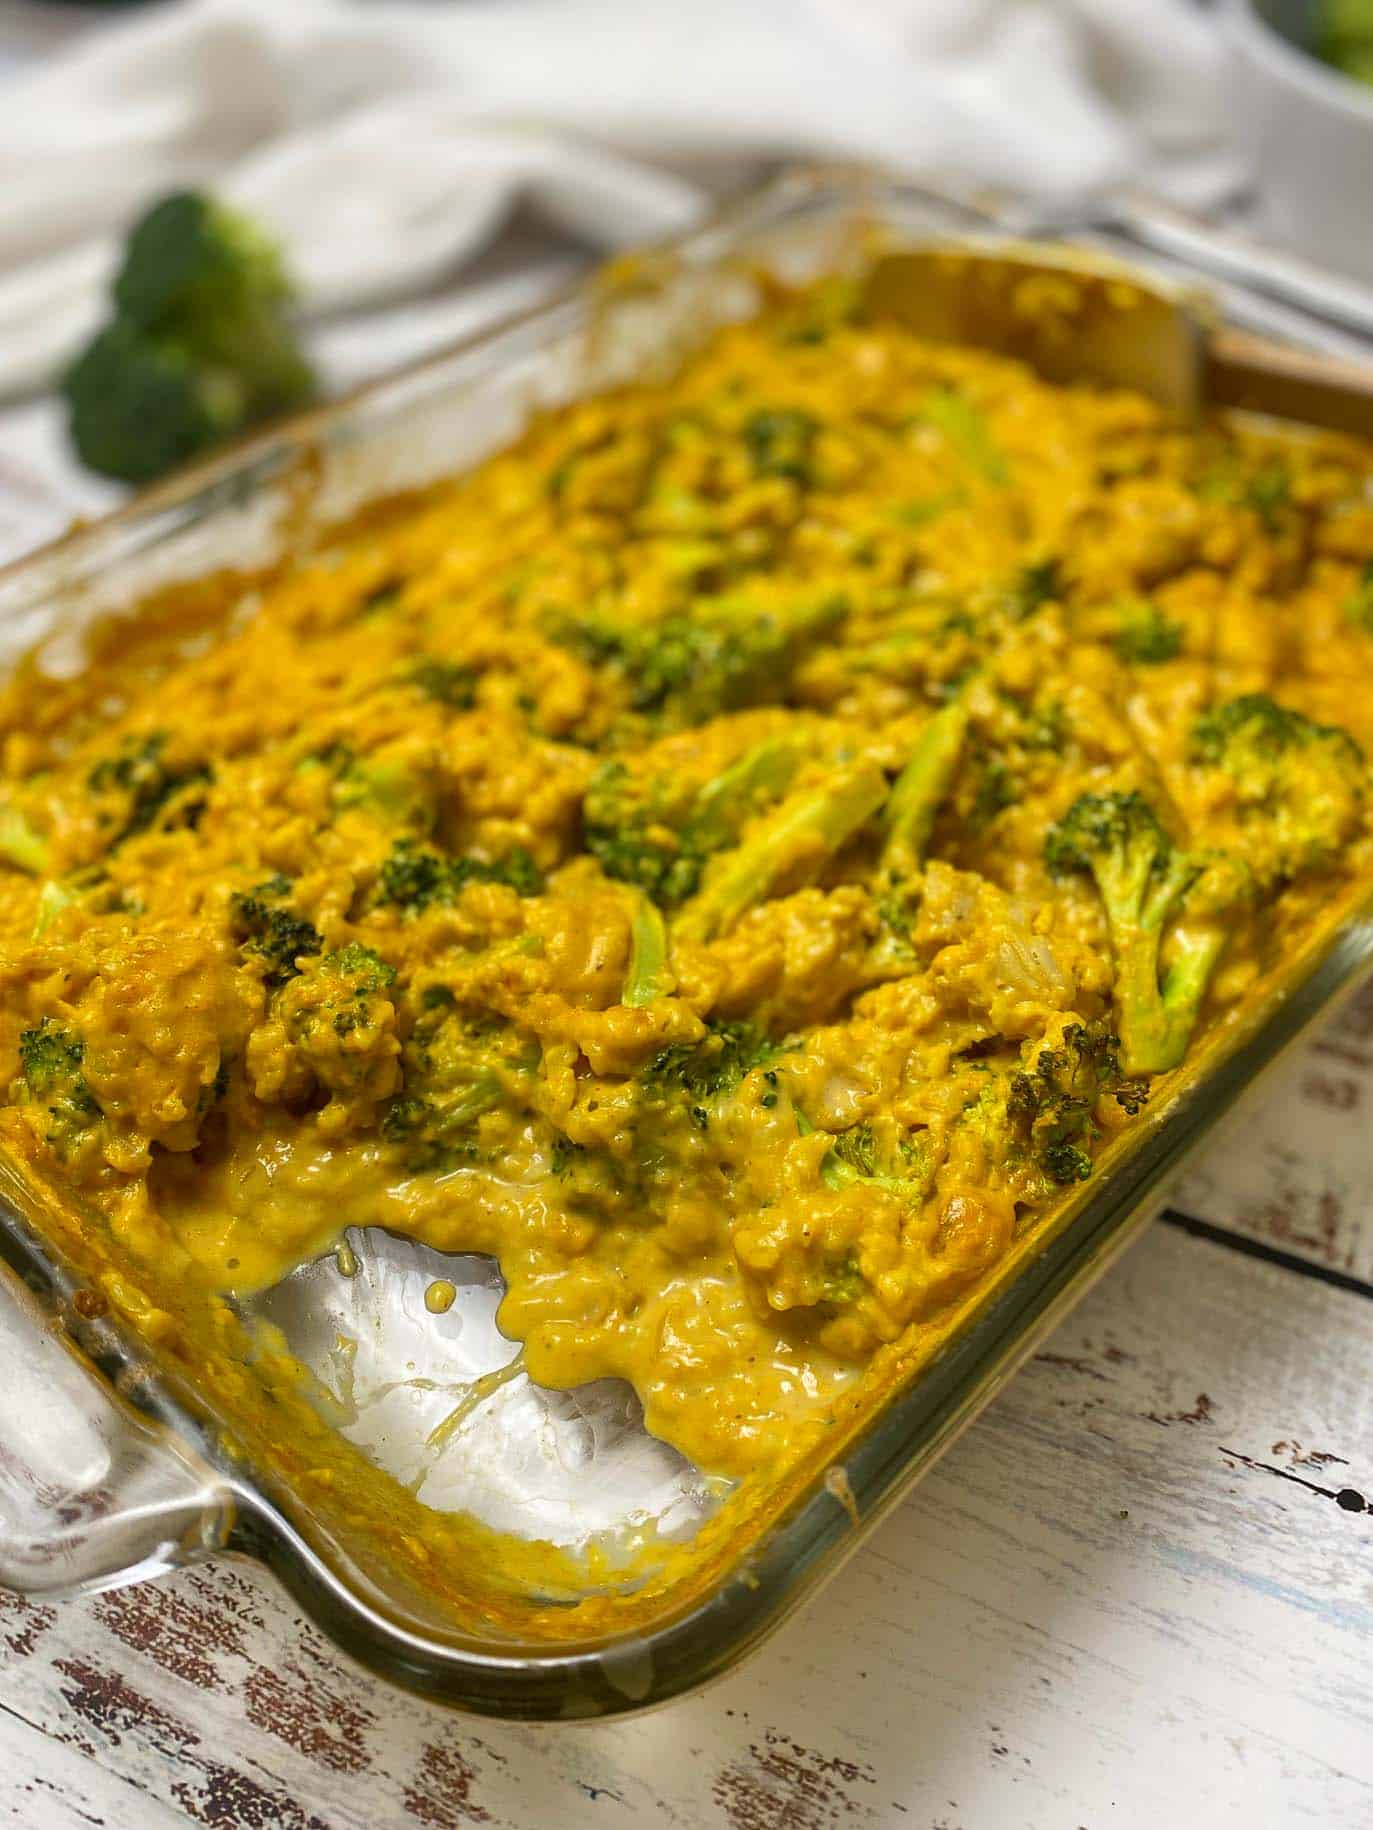 creamy casserole with broccoli in glass dish with a section missing from tray